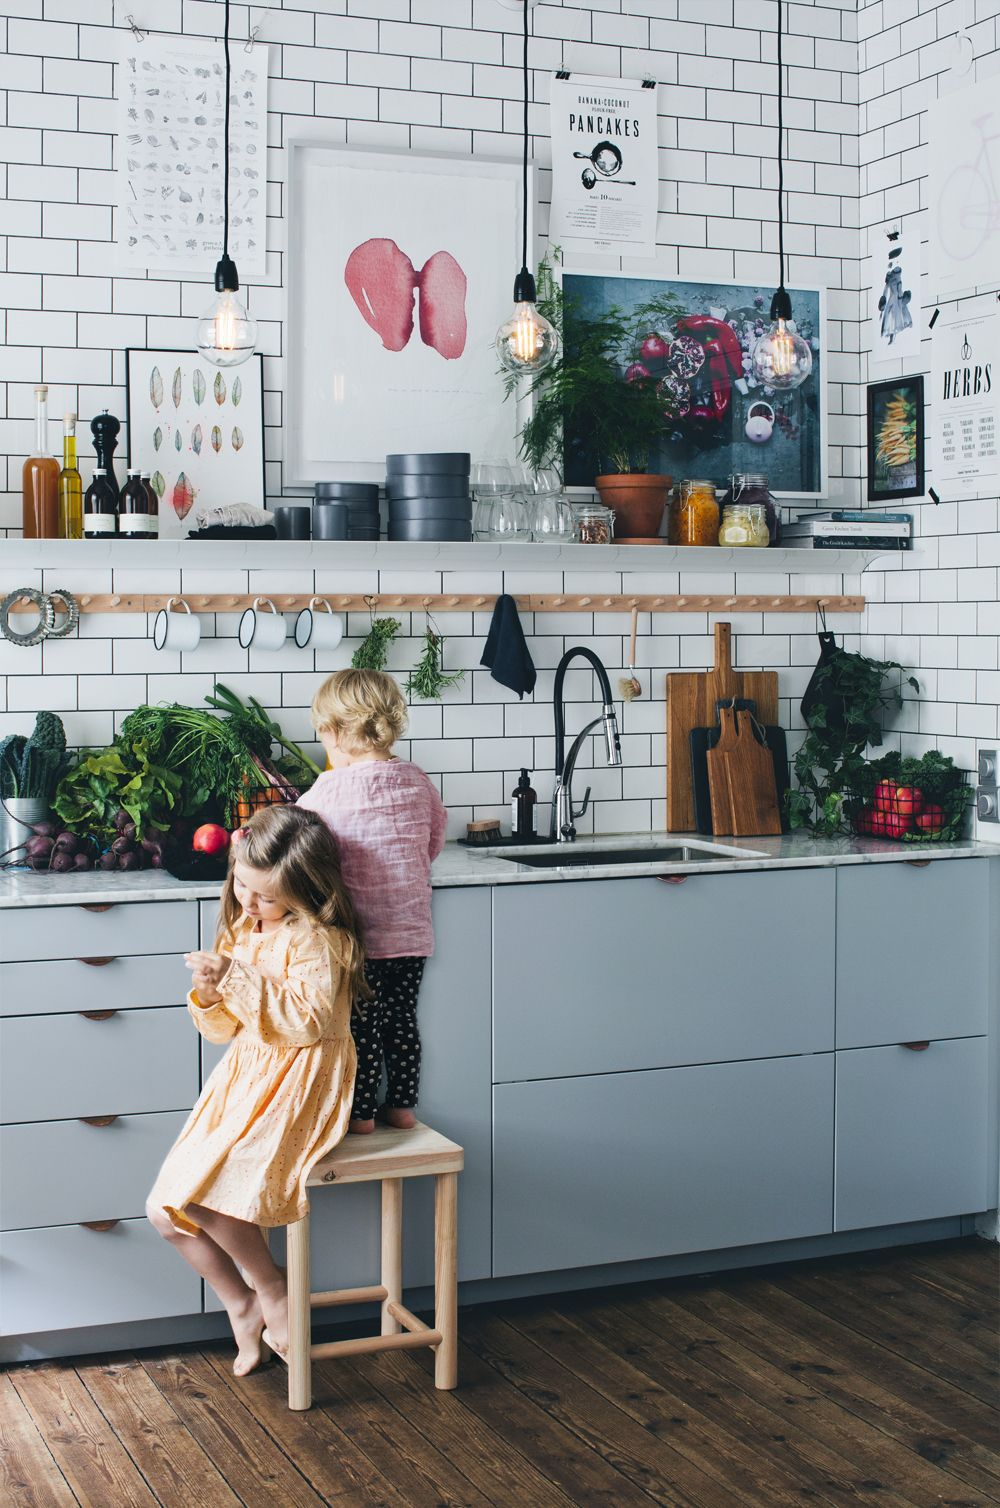 Granit hos Green Kitchen Stories (Hannasroom.com) | Kitchen stories ...